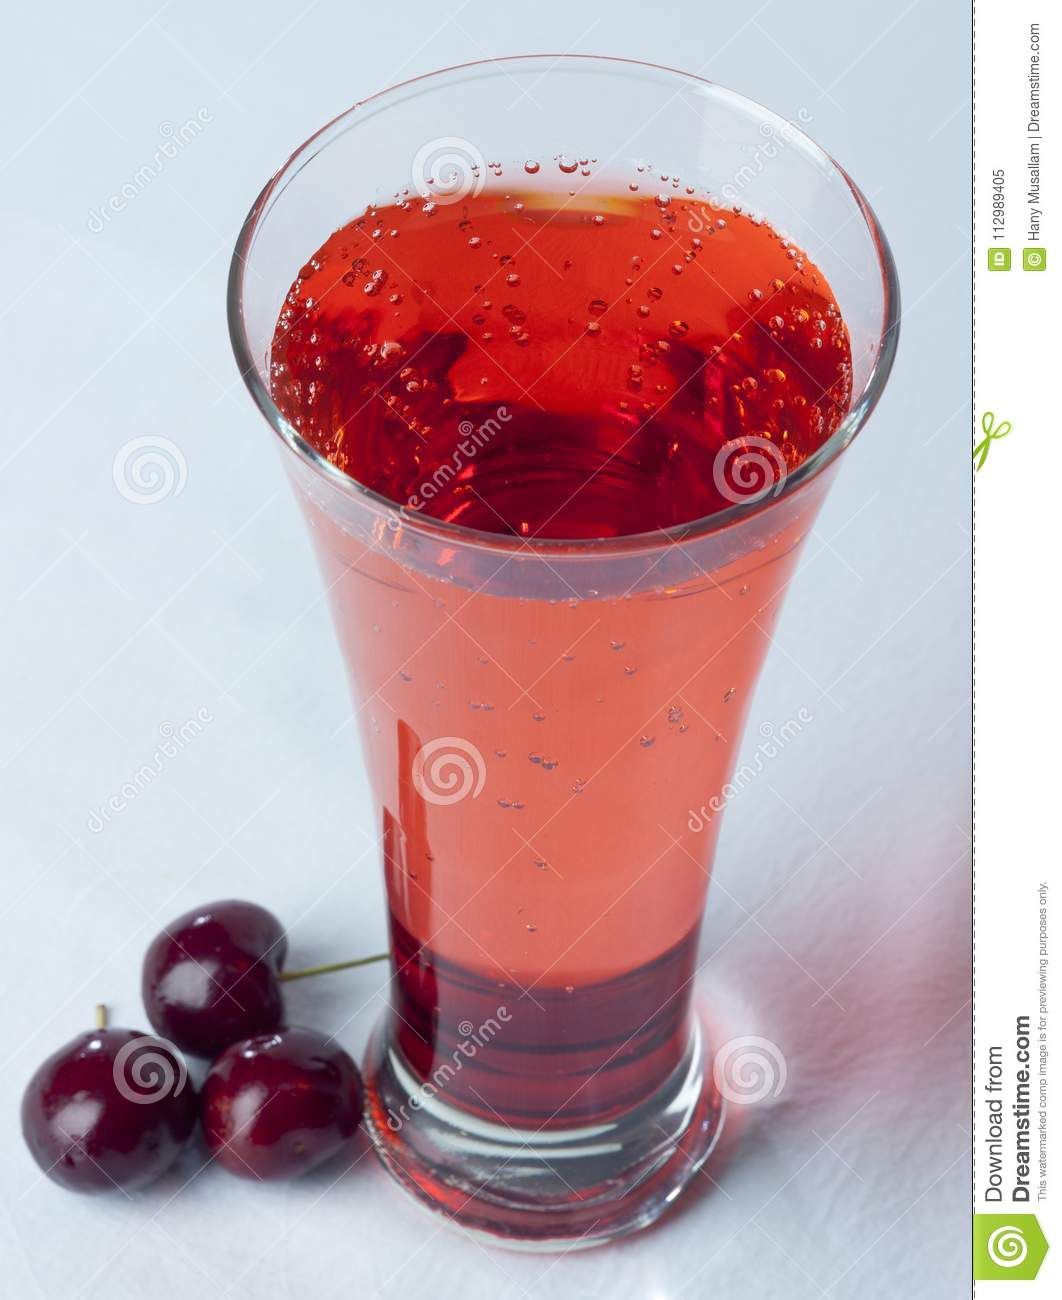 A glass of Cherry Juice close up with cherry fruit and Bubles